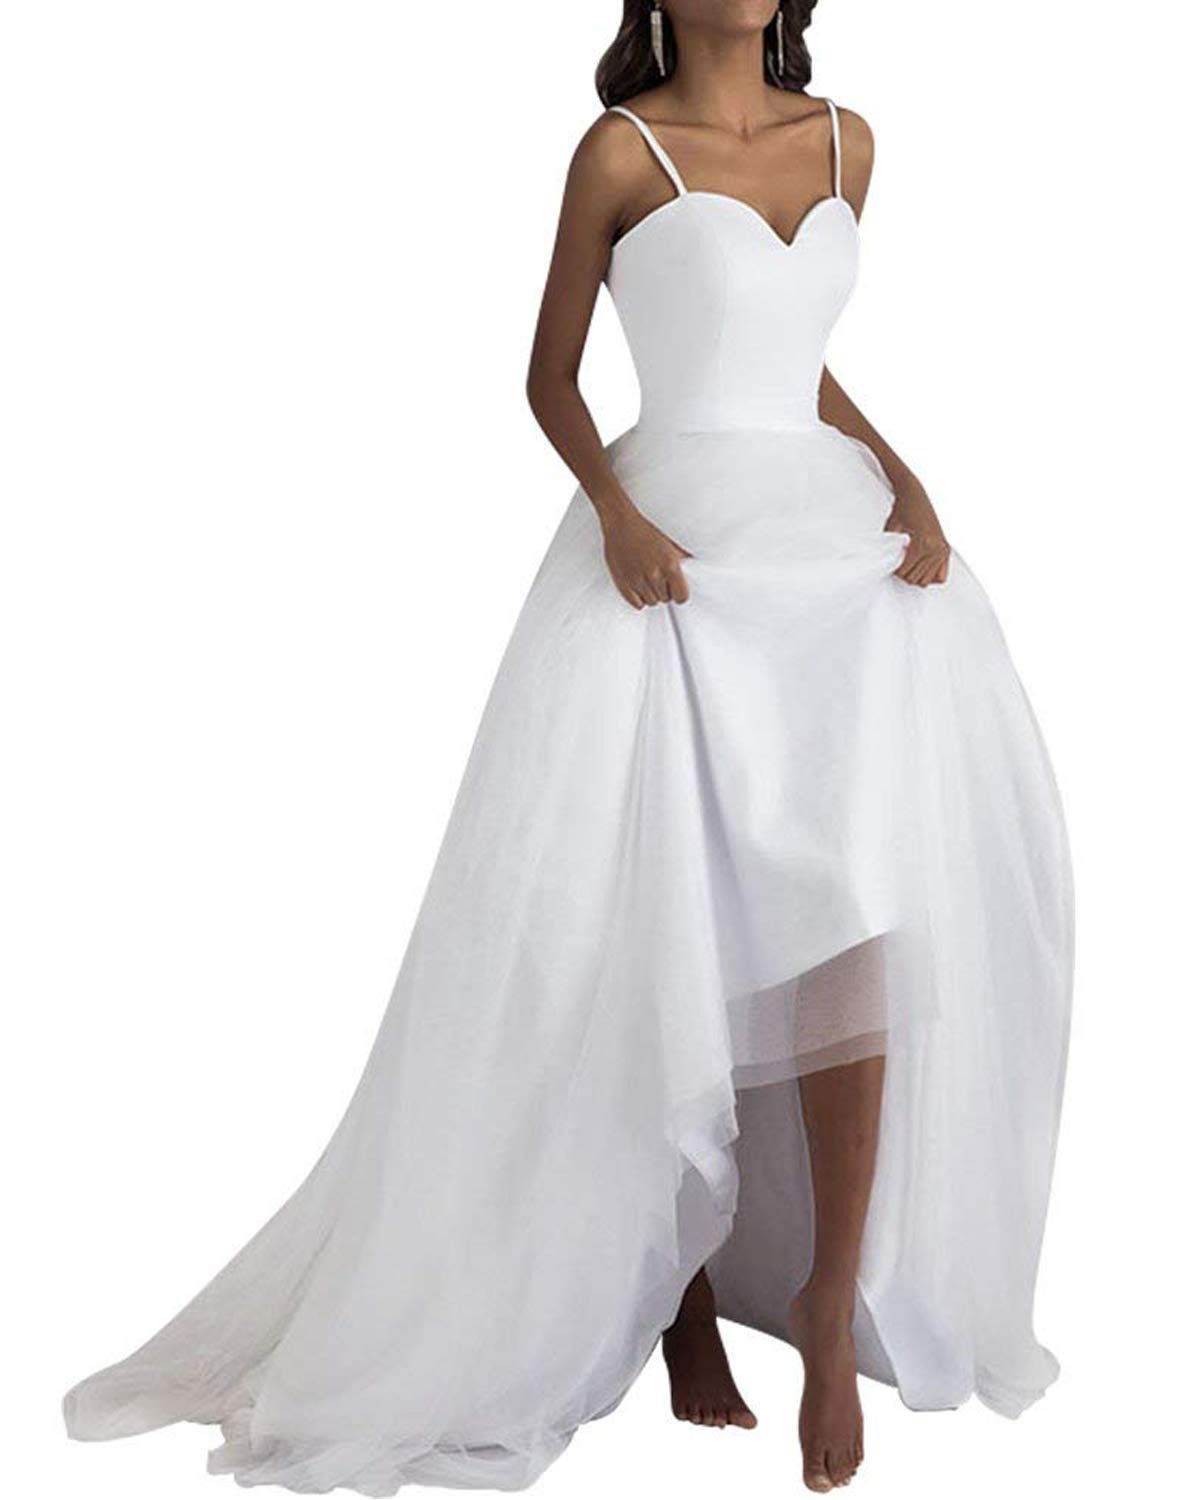 65743ee5b03 Dreagel A-line High Low Wedding Dresses Simple Satin Bridal Dress for Women  Style D Ivory US 14